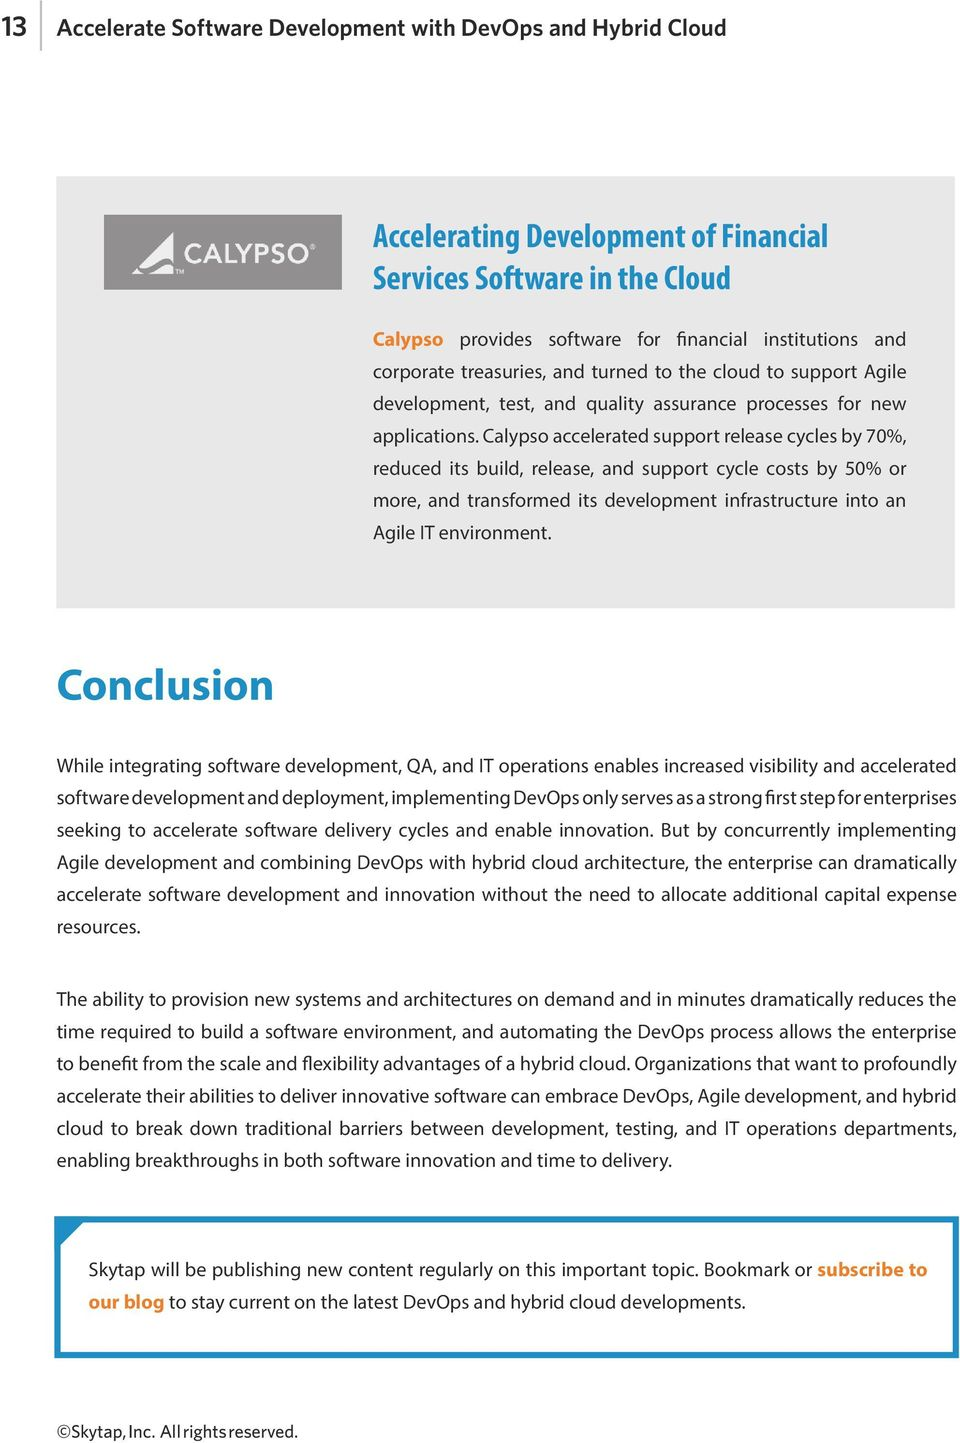 Calypso accelerated support release cycles by 70%, reduced its build, release, and support cycle costs by 50% or more, and transformed its development infrastructure into an Agile IT environment.